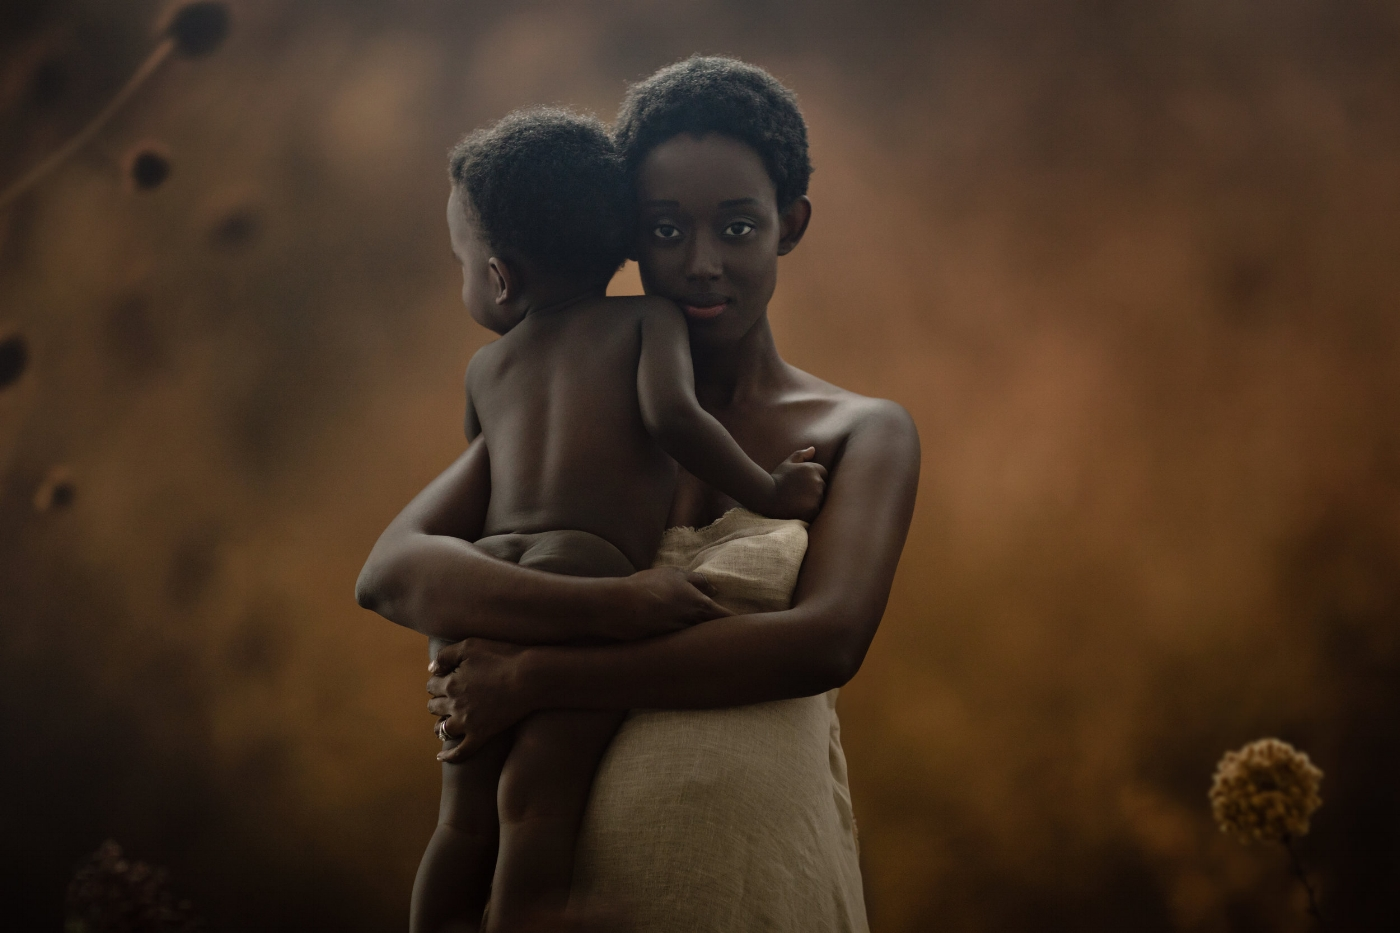 Motherhood Photography in NYC. Fine-art portraits capturing the beauty of motherhood.